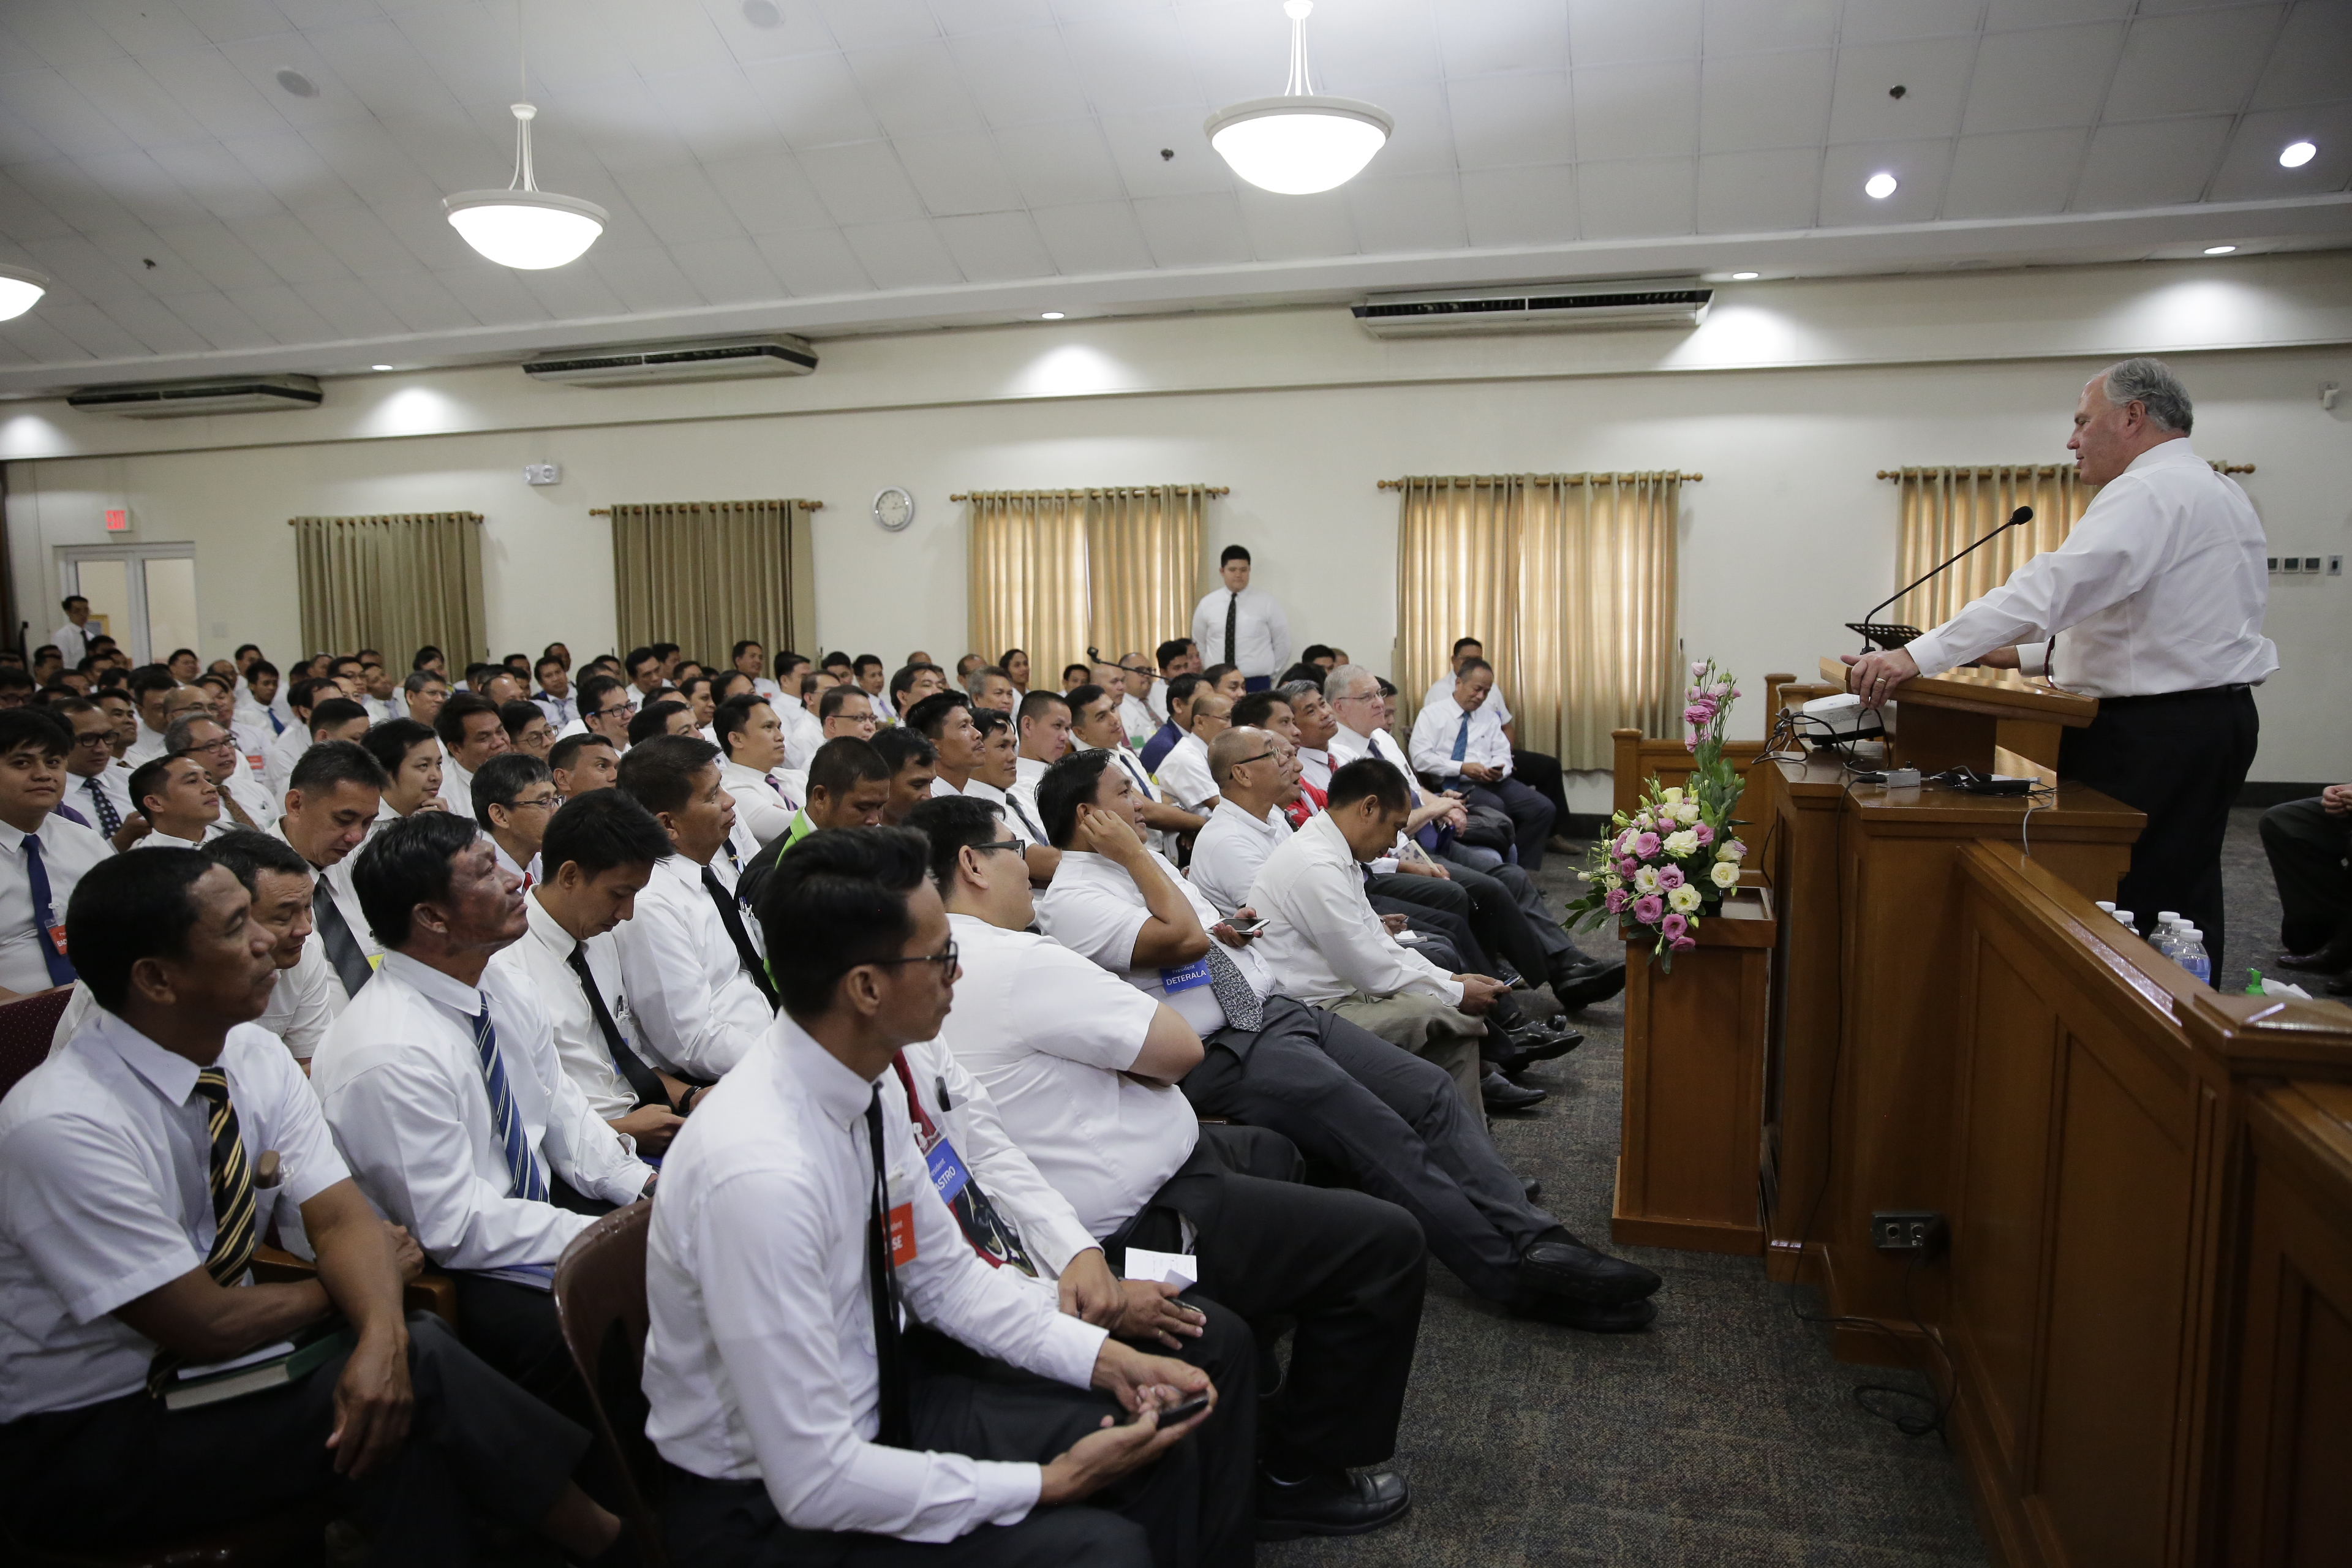 Elder Ronald A. Rasband visits with Filipino Latter-day Saint during his Feb. 13 through Feb. 26, 2018, trip to the Church's Philippines Area.